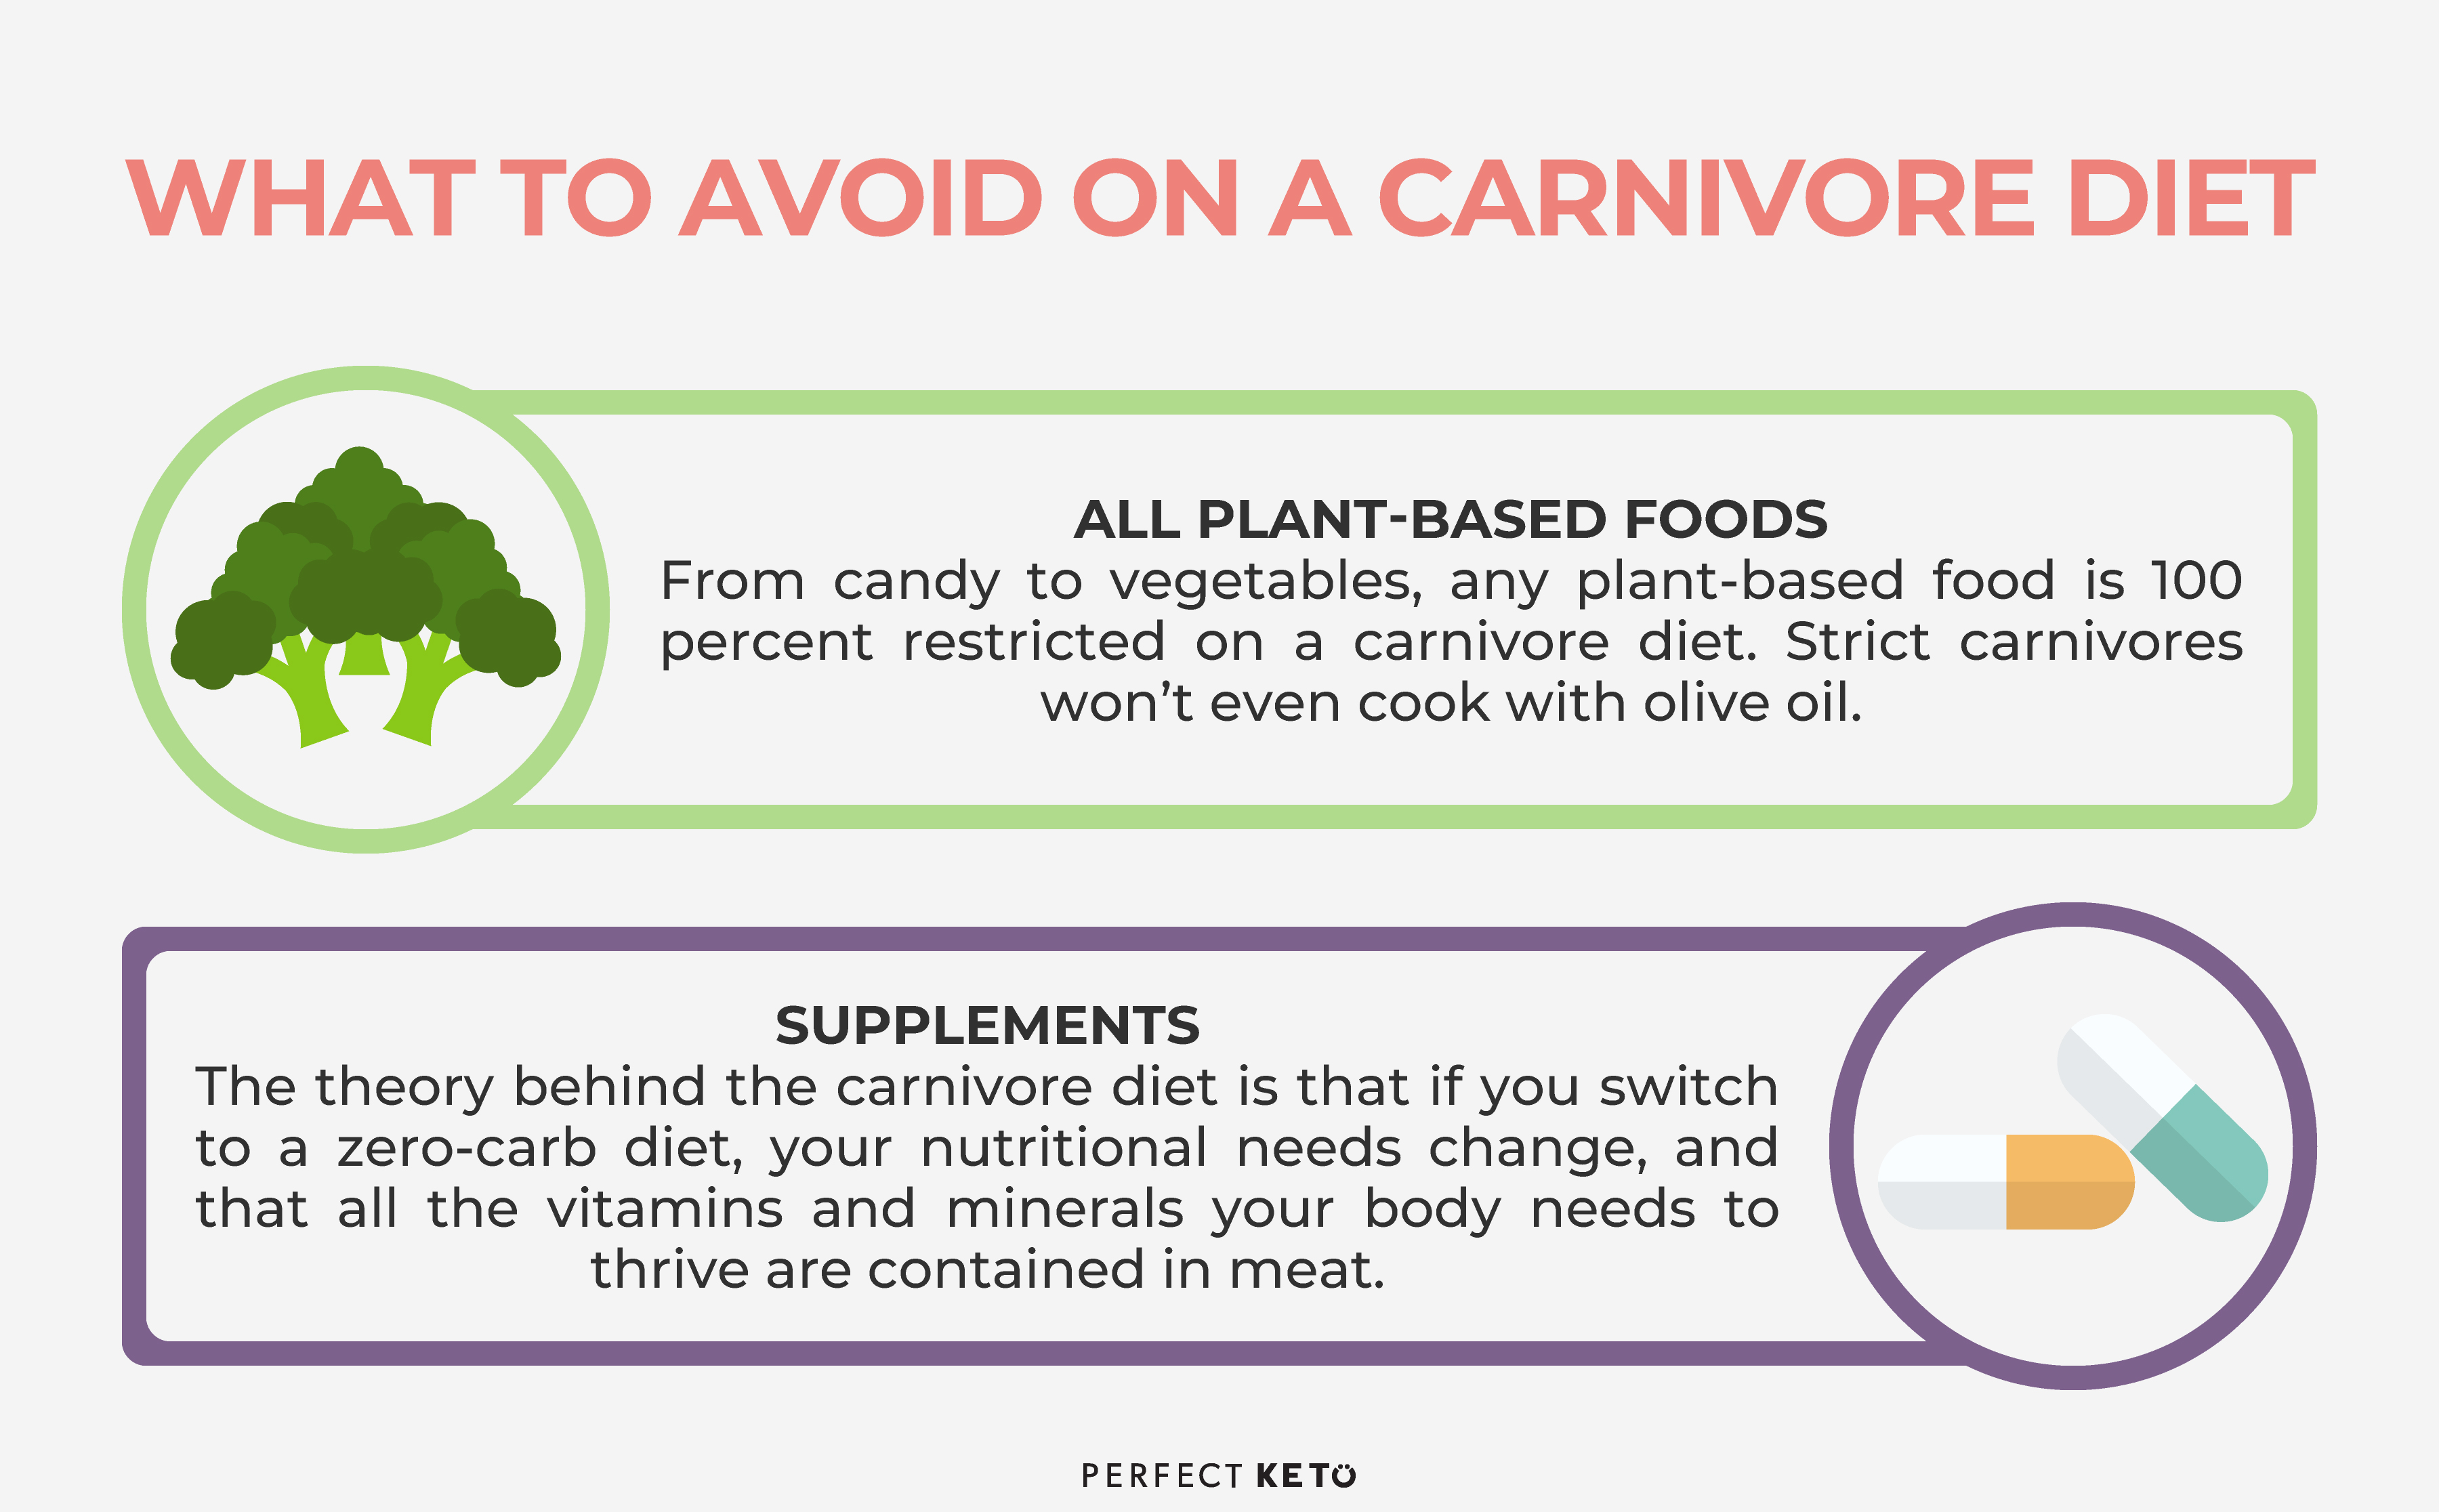 What to avoid on the carnivore diet